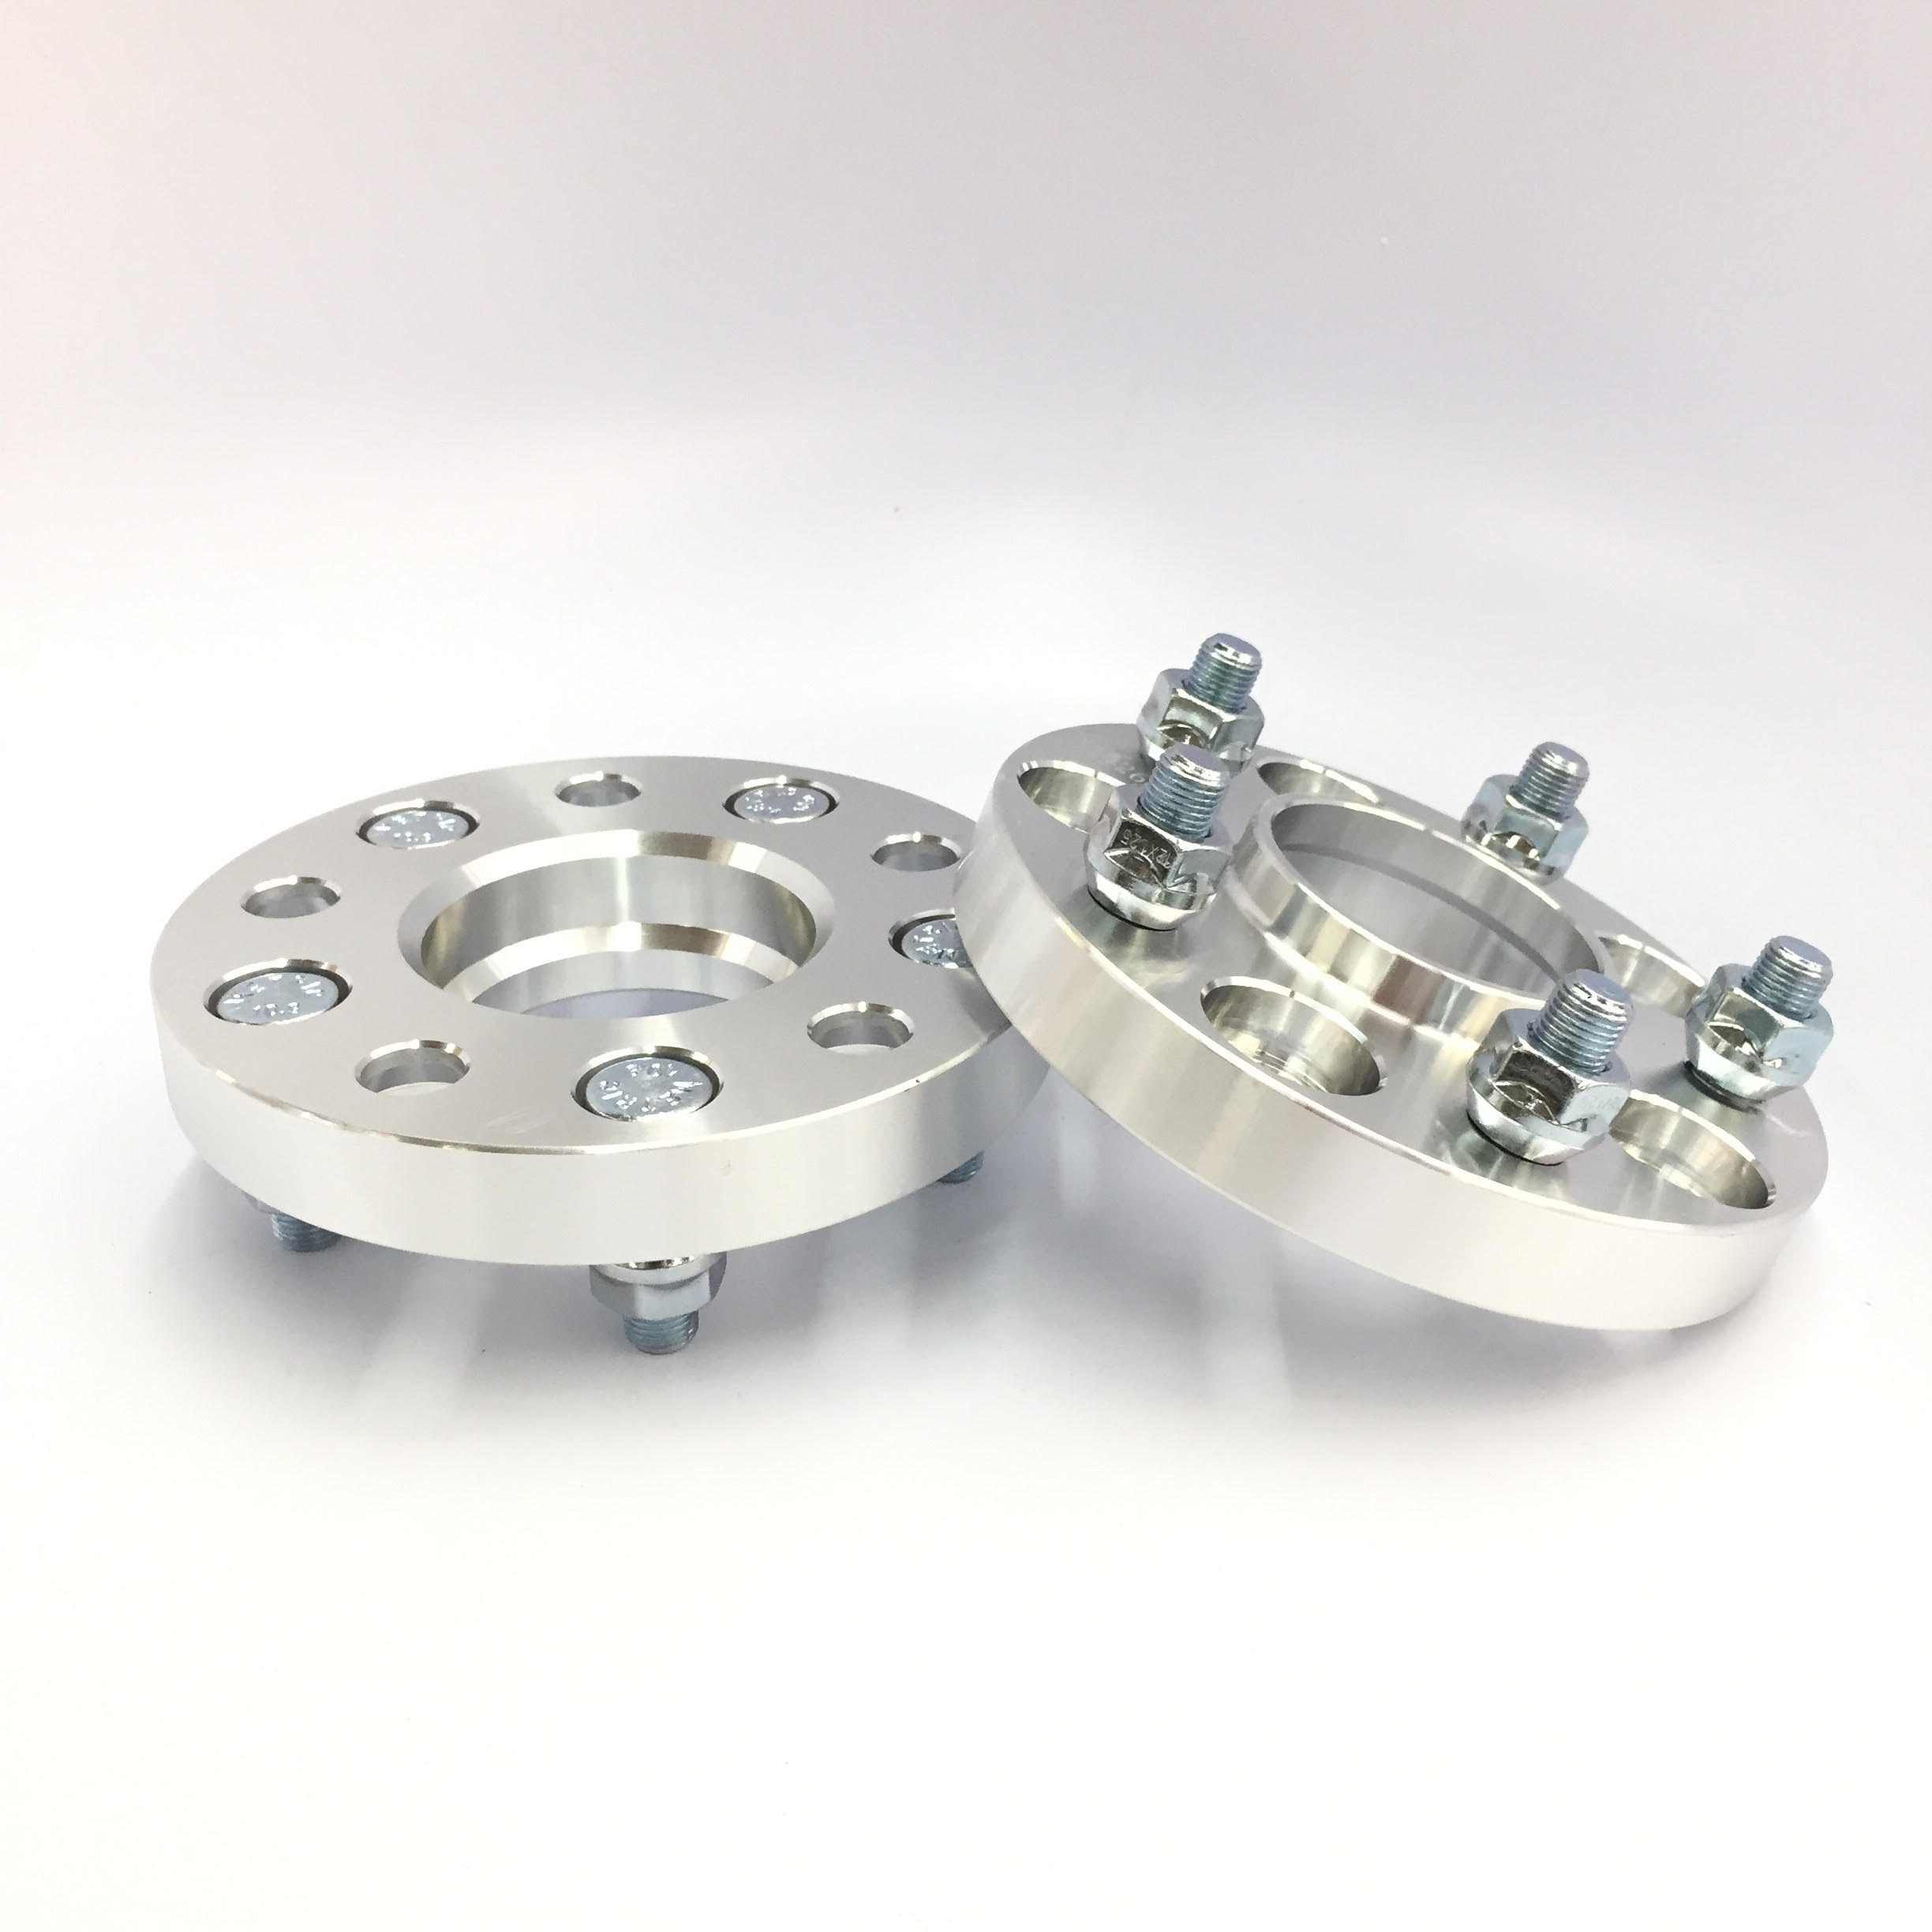 "2pc 13/16"" Thick Wheel Spacers w/ Lip 